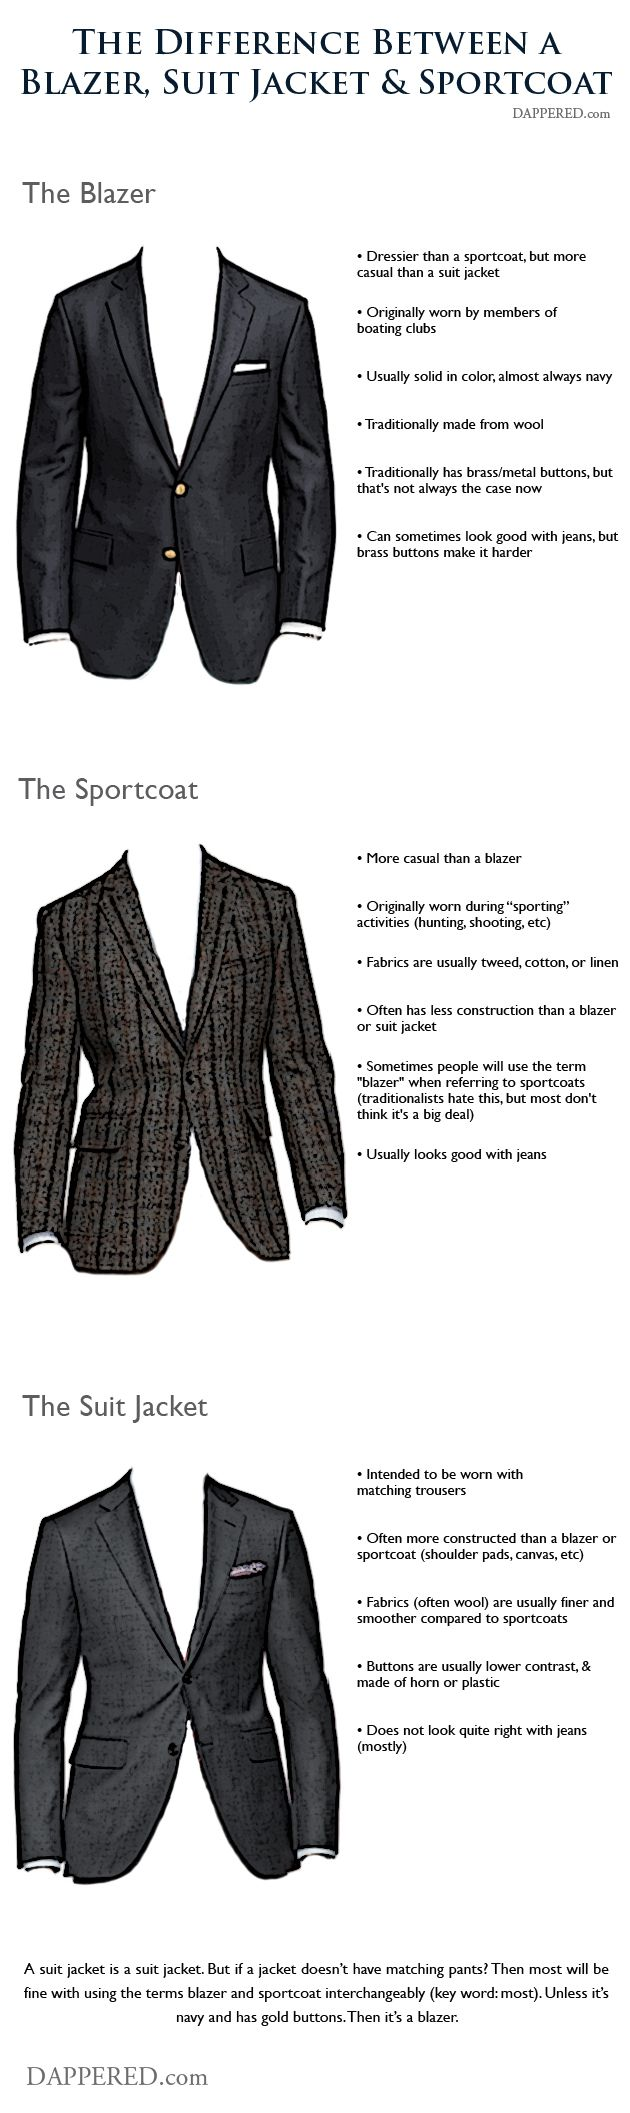 The Difference Between a Blazer, Suit Jacket, & Sportcoat | Dappered